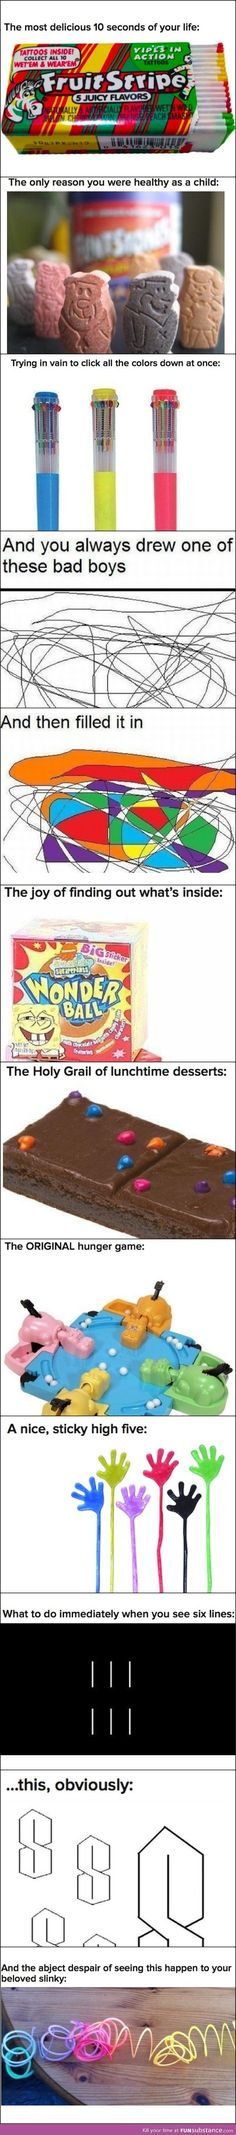 well this is terrifyingly accurate of my childhood...besides the wonderball and fruit stripes, never had either of those.